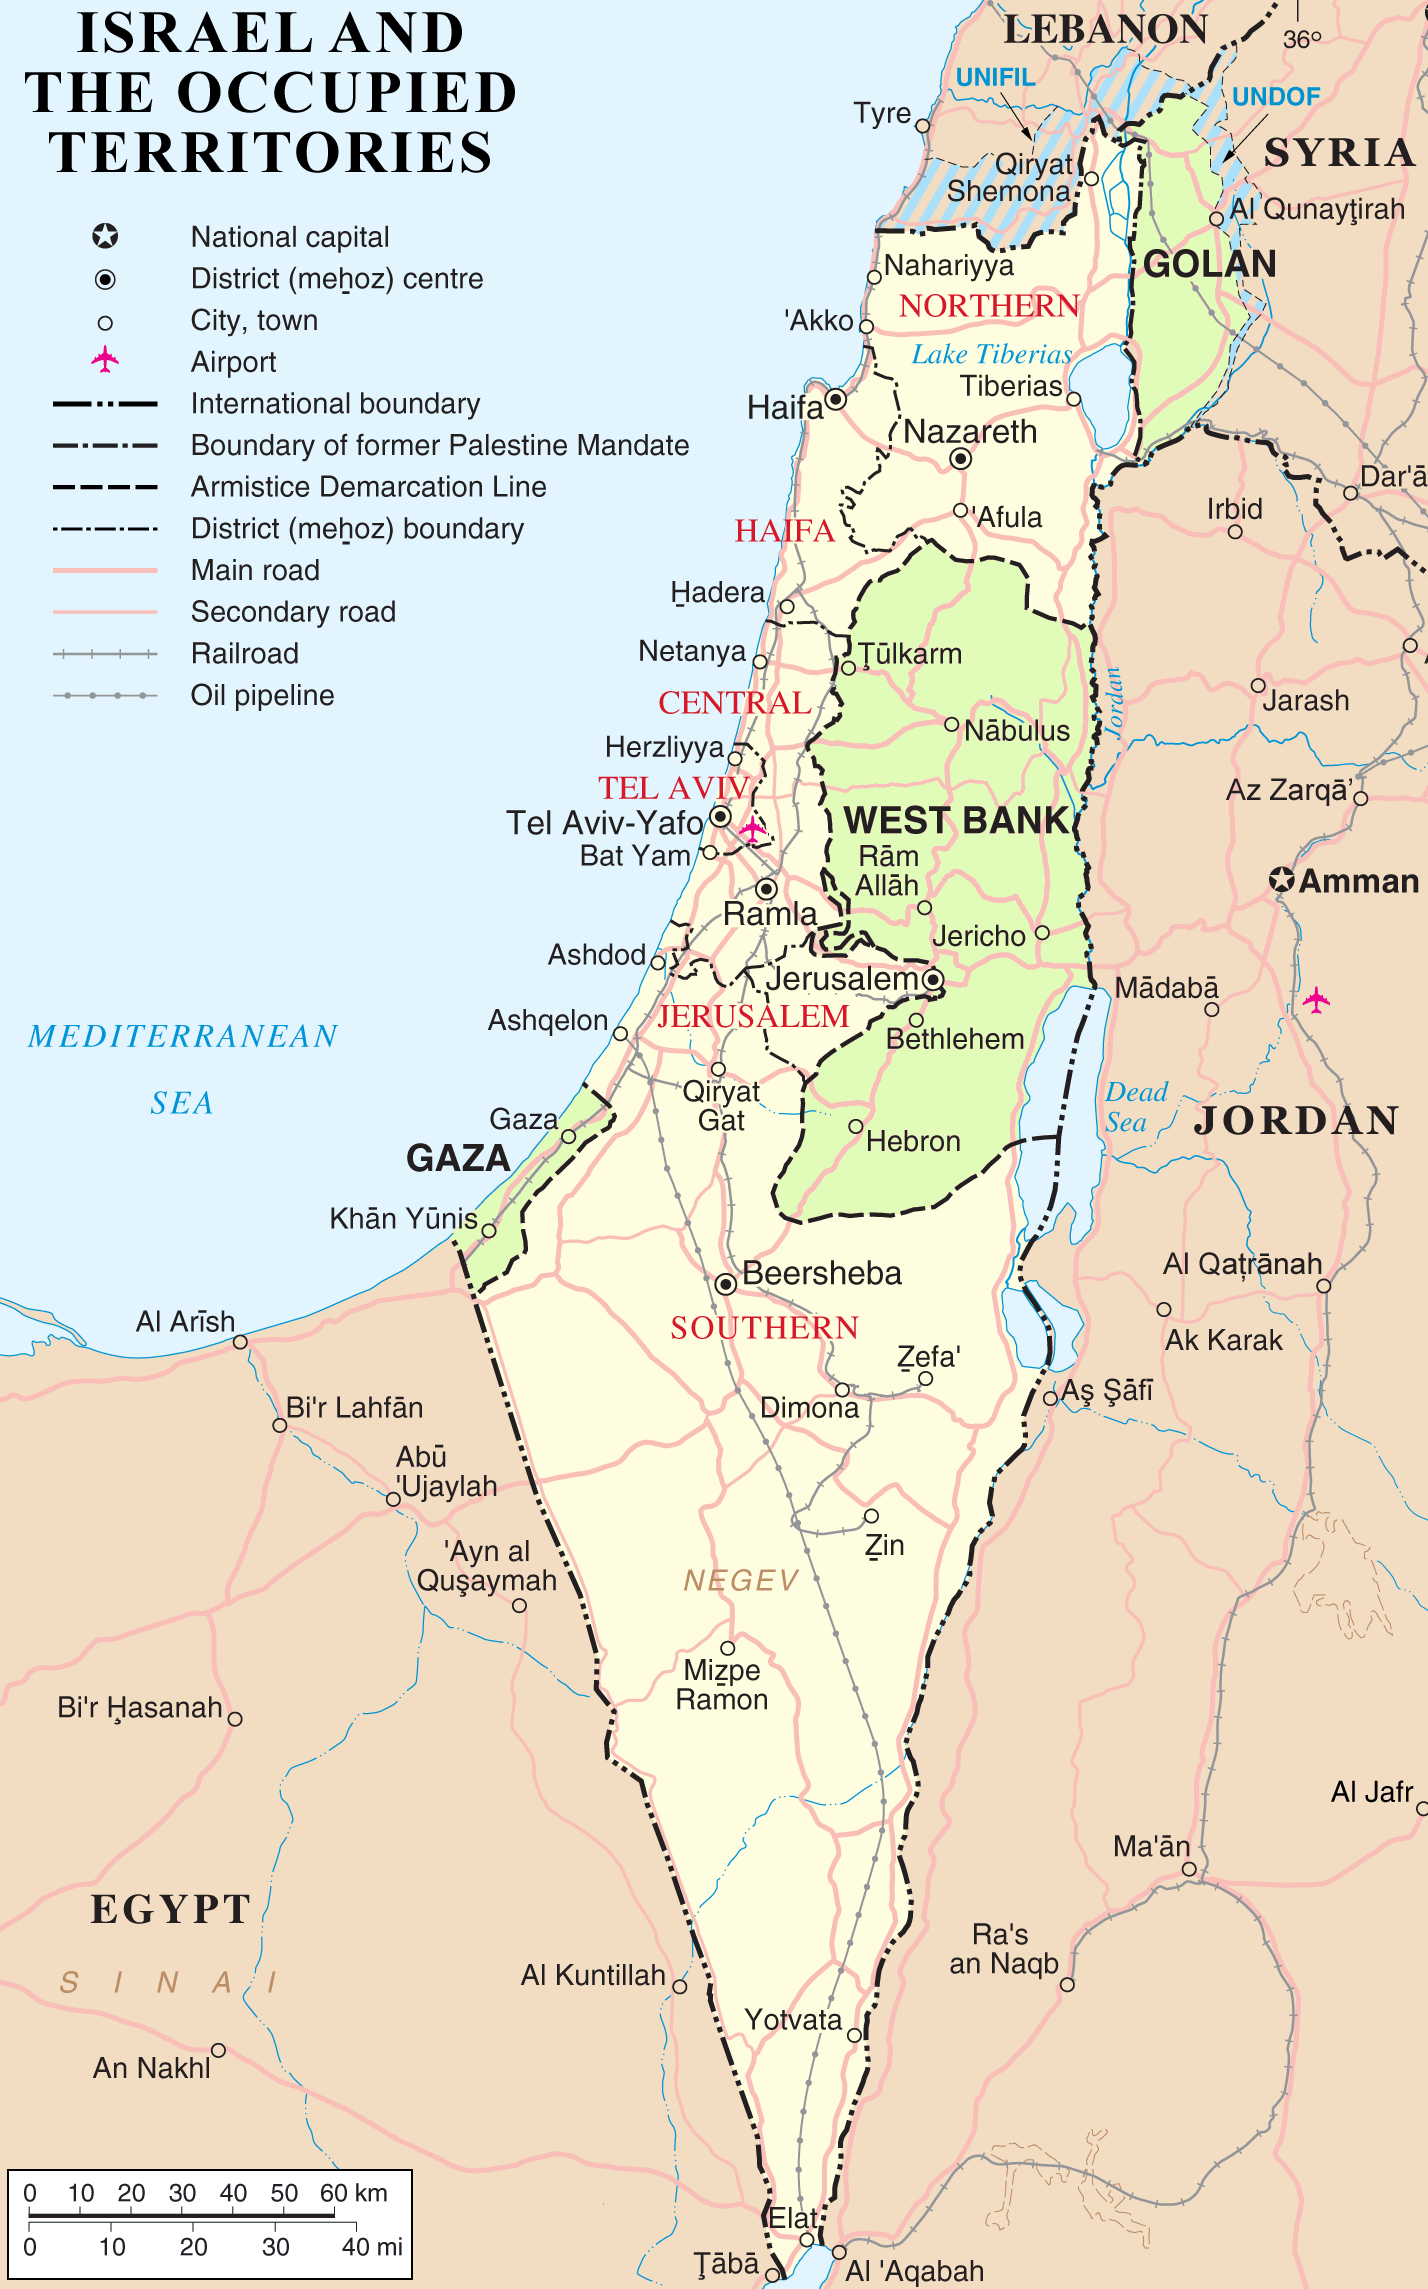 http://upload.wikimedia.org/wikipedia/commons/f/f5/Israel_and_occupied_territories_map.png